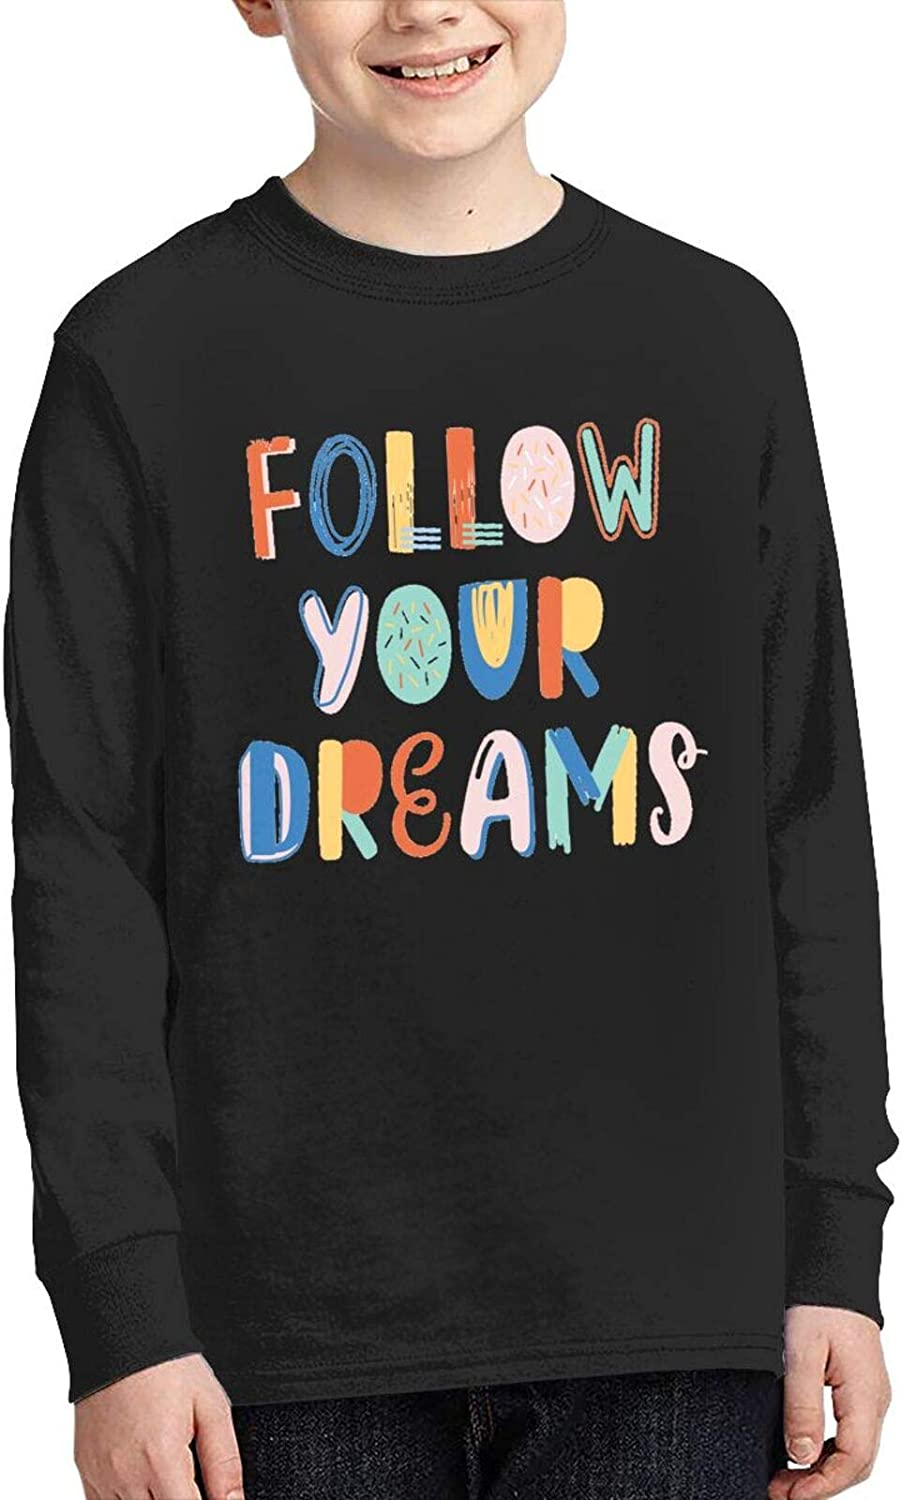 Follow Your Dreams Funny Lettering Youth Boys Girls T-Shirt Long Sleeve Cotton Tshirt Comfortableteenage Tops